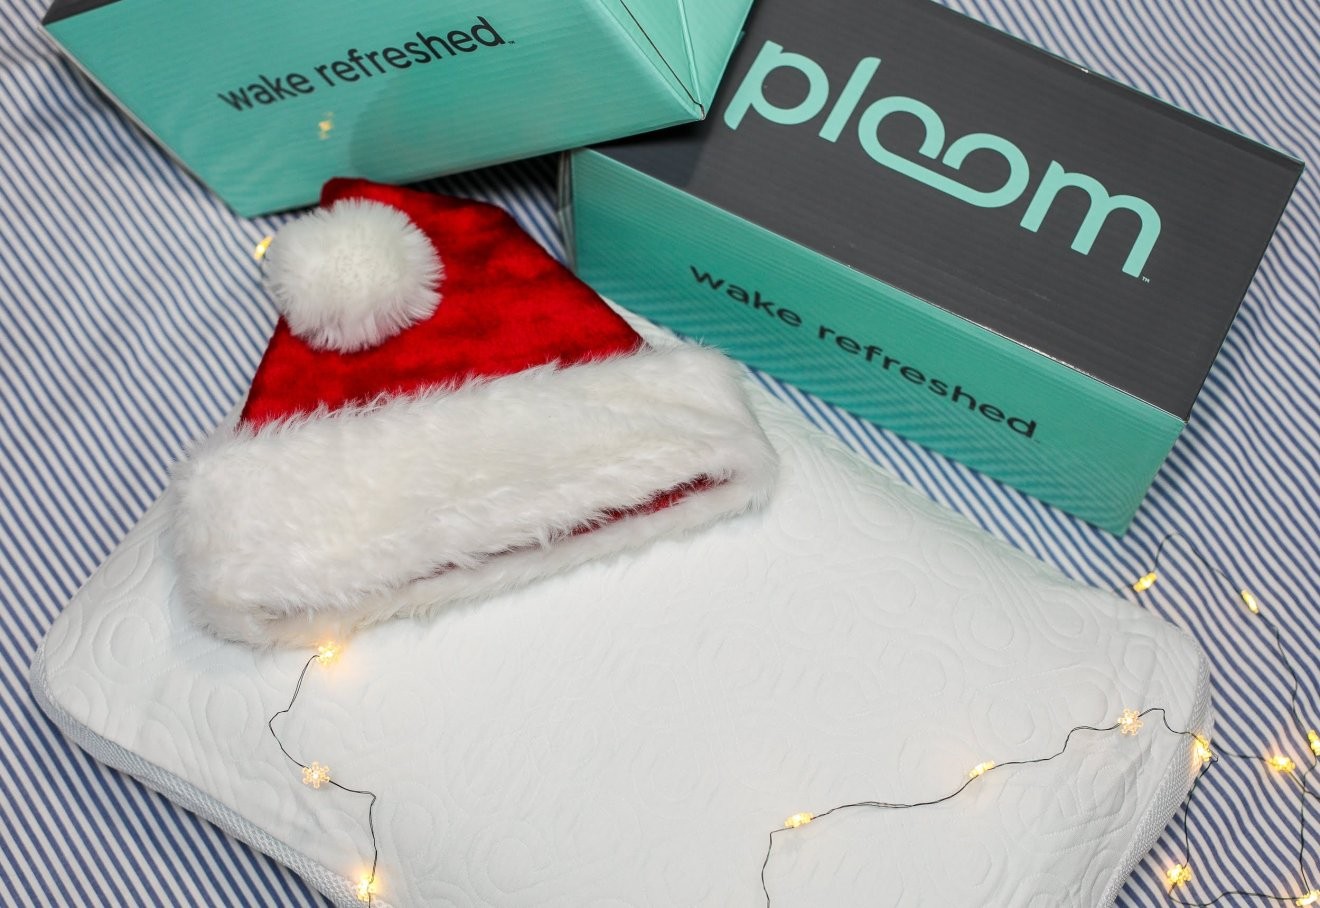 Ploom pillow by Sleep Country